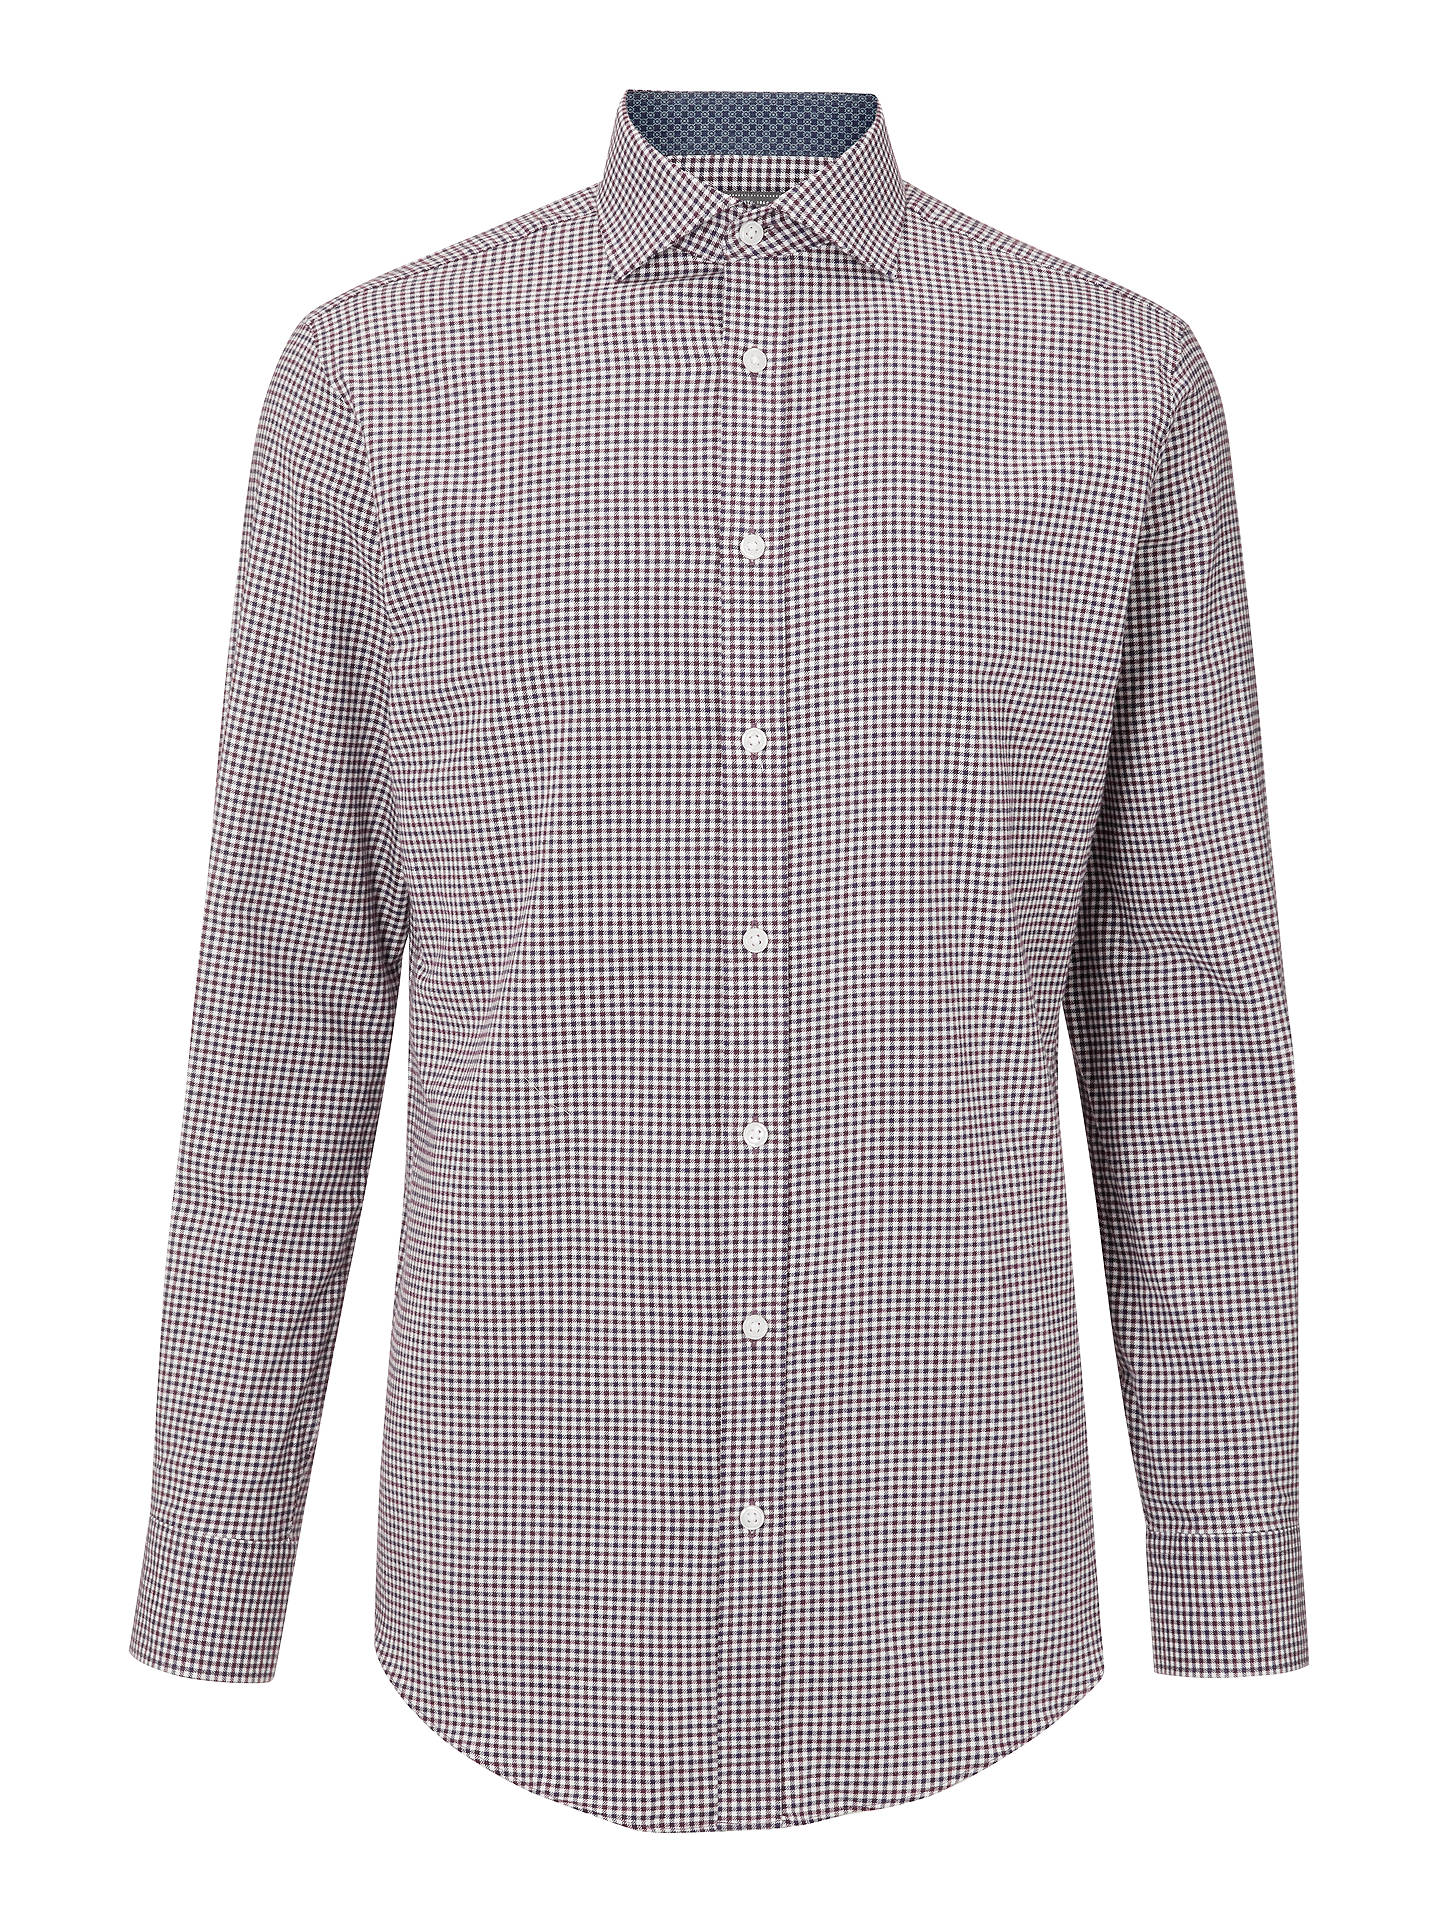 Buy John Lewis & Partners Gingham Check Brushed Cotton Shirt, Navy/Burgundy, 15 Online at johnlewis.com